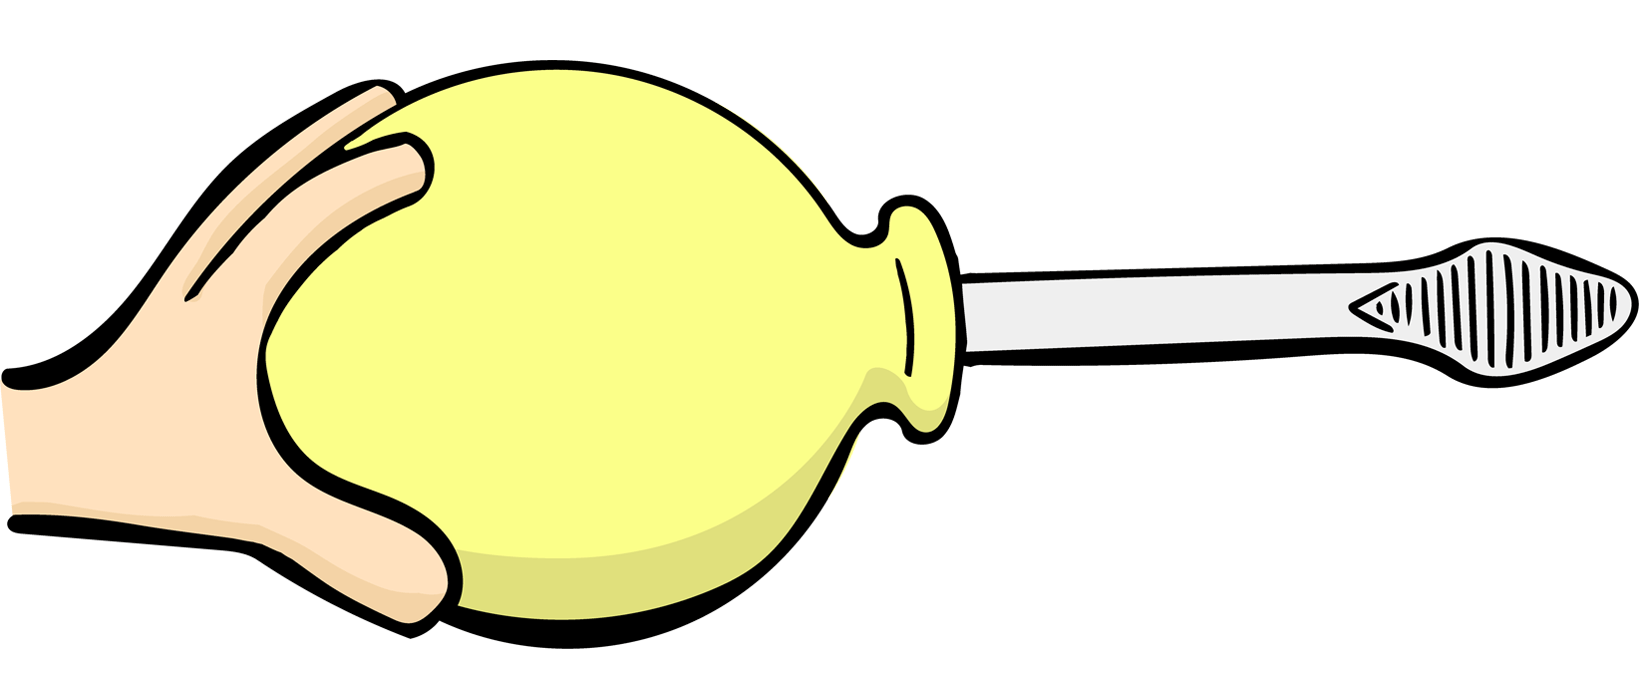 Screwdriver clipart tip. User experience and the